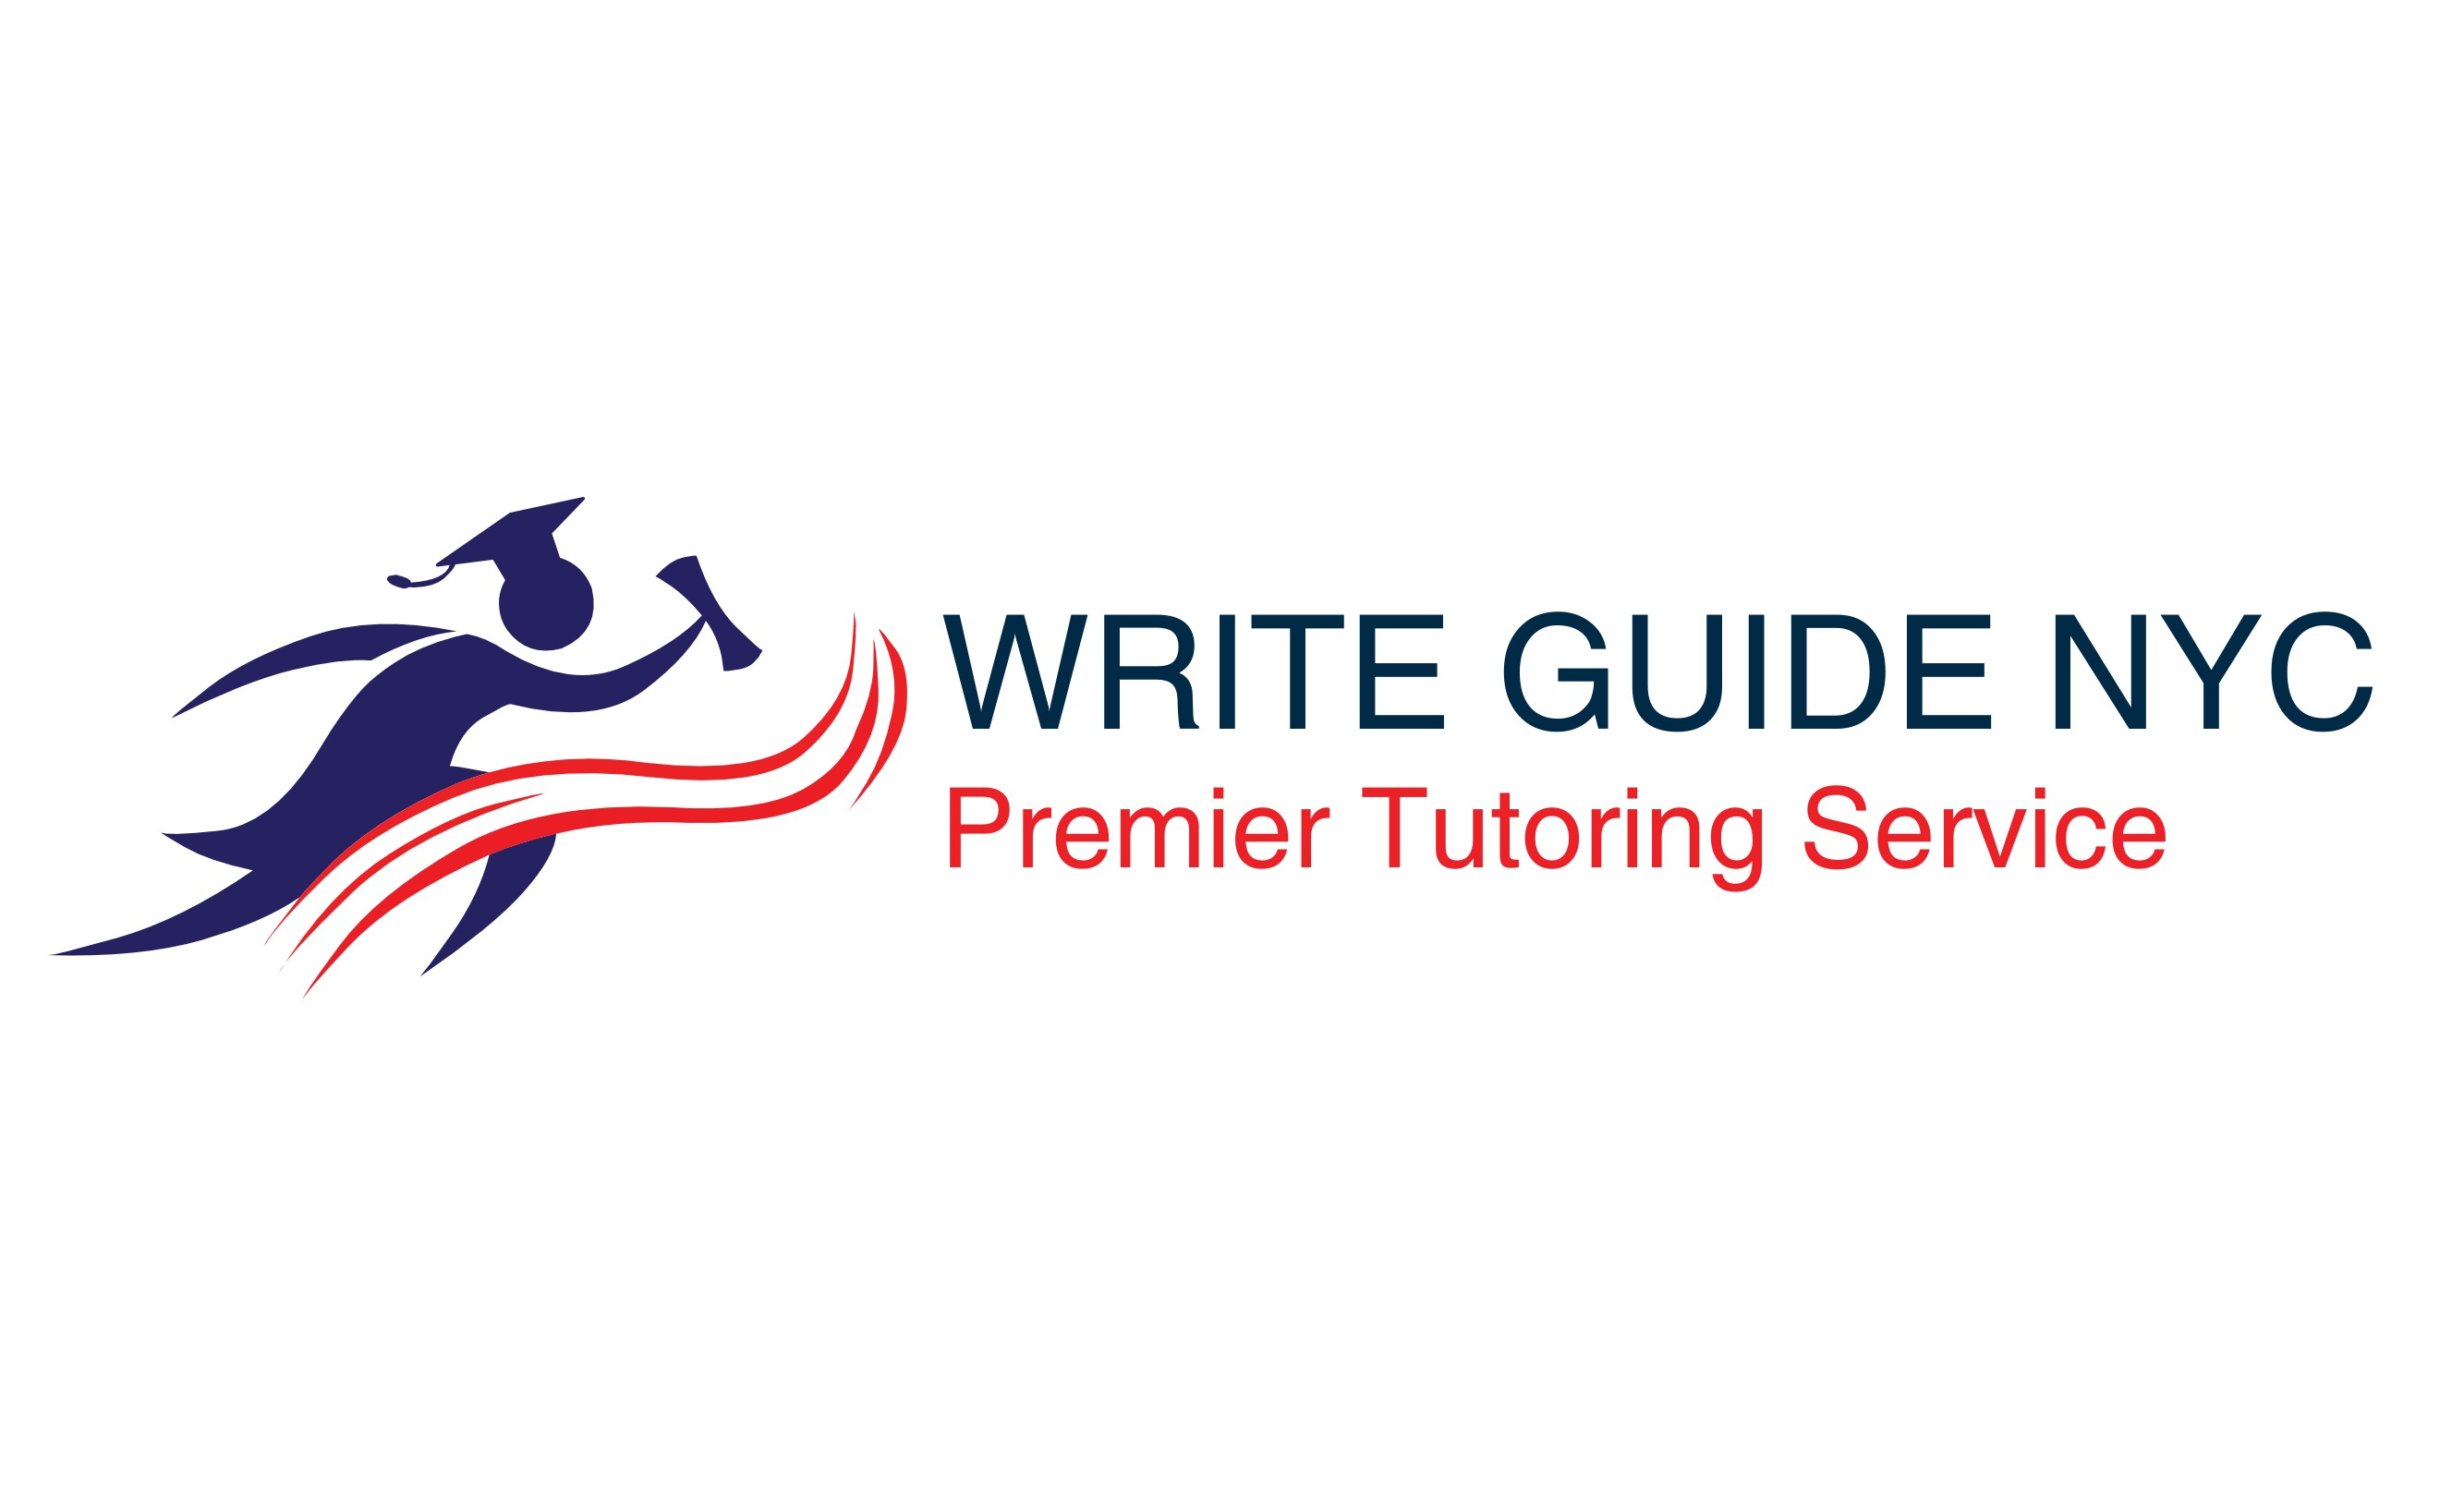 Write Guide NYC